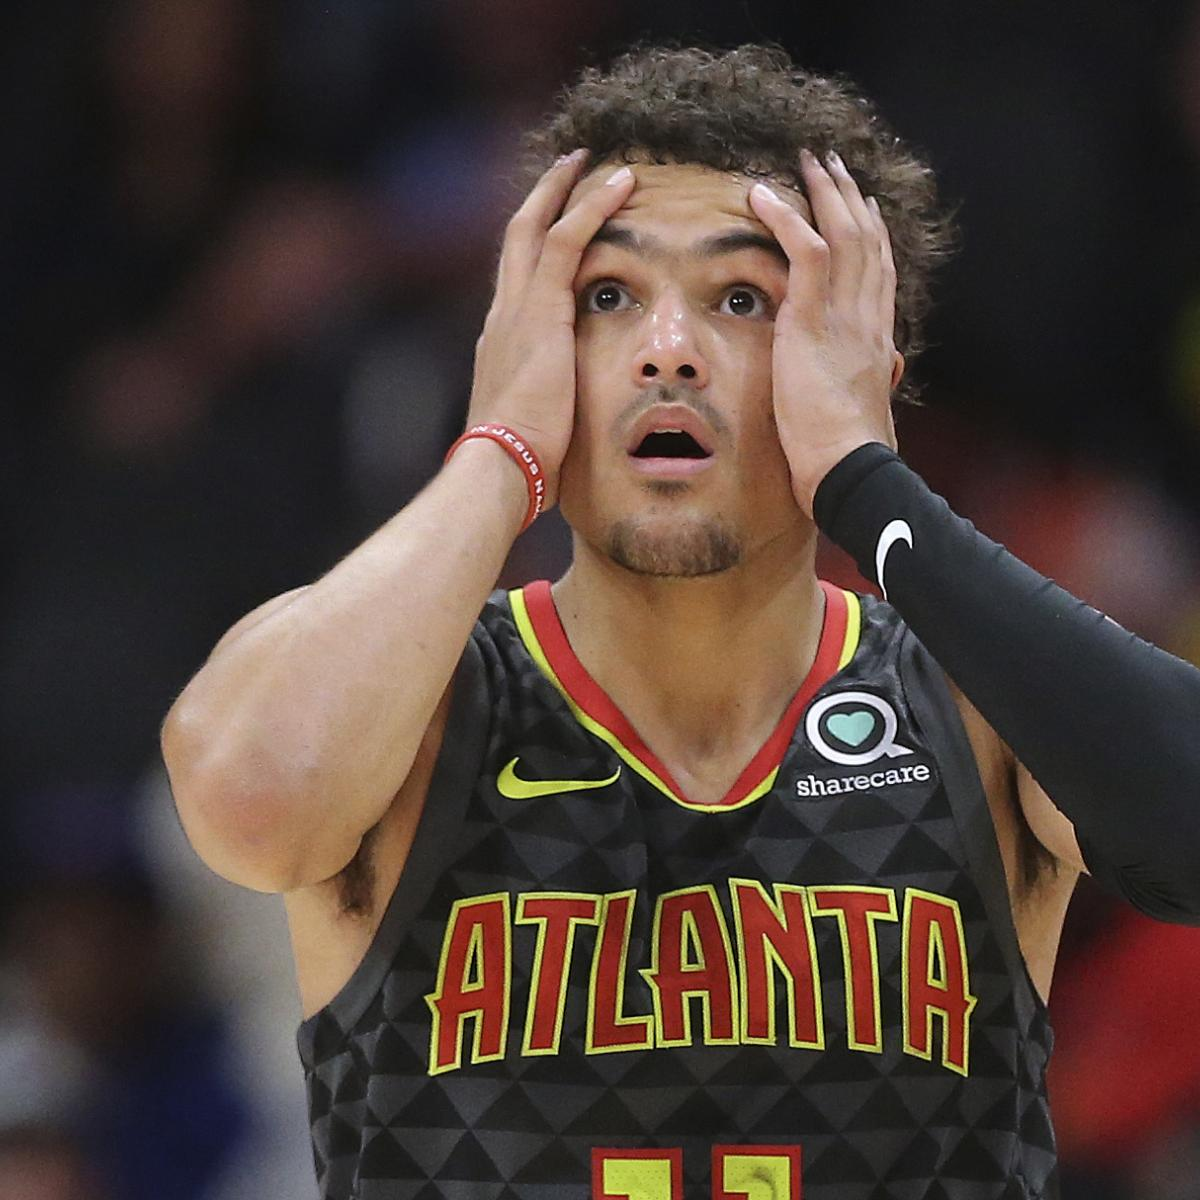 Nba Rookie Award Predictions For 2018 19 Season: Trae Young's Hawks Teammates Filled His Audi Car With